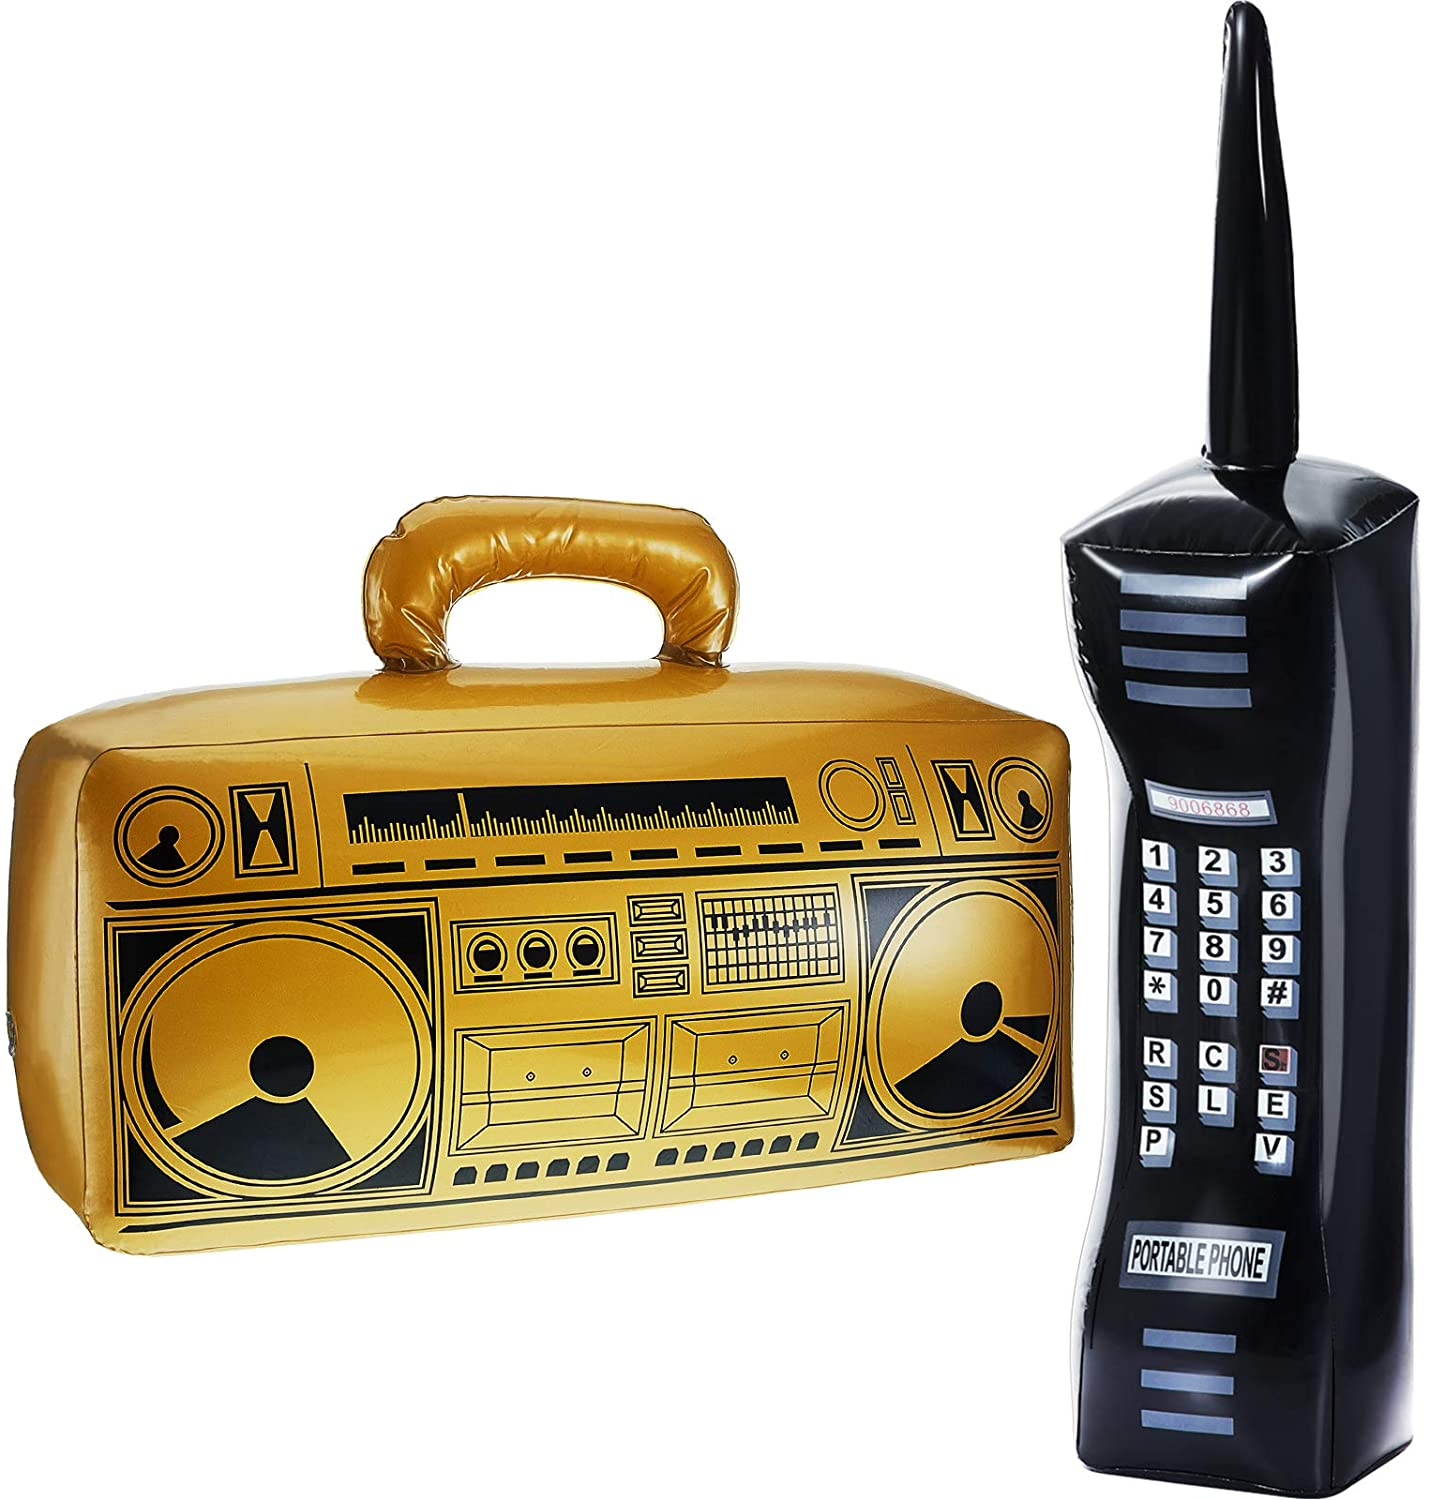 2 Pieces Inflatable Radio Boombox and Inflatable Mobile Phone Box for 80s 90s Party Decorations